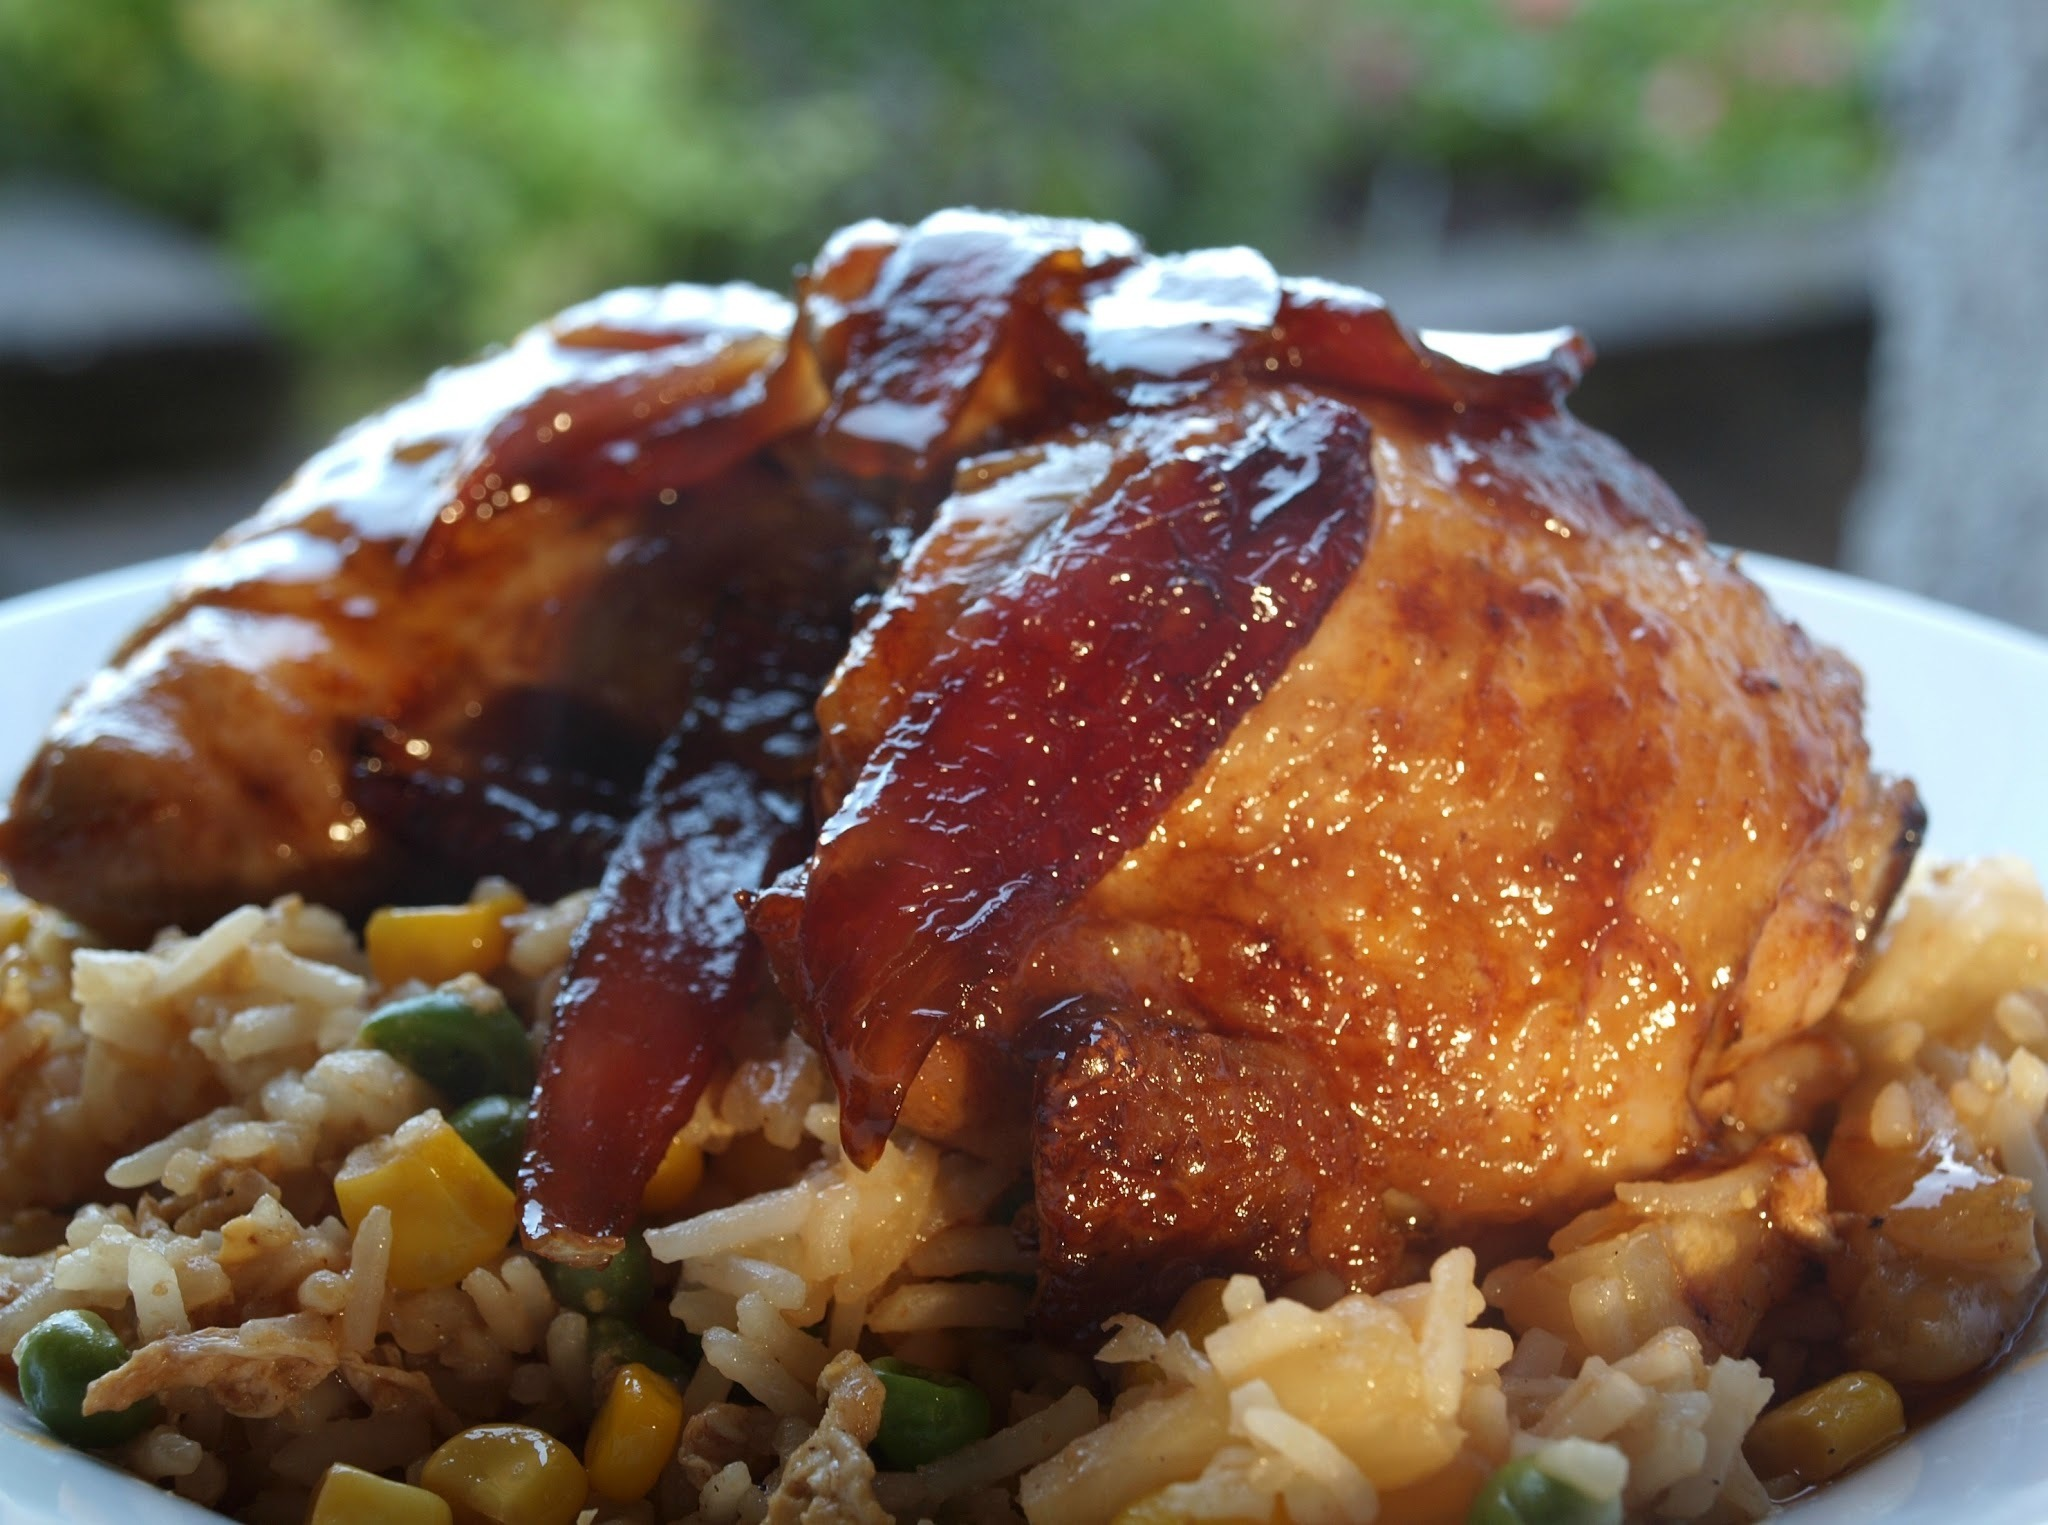 Saucy Chicken & Pineapple fried rice